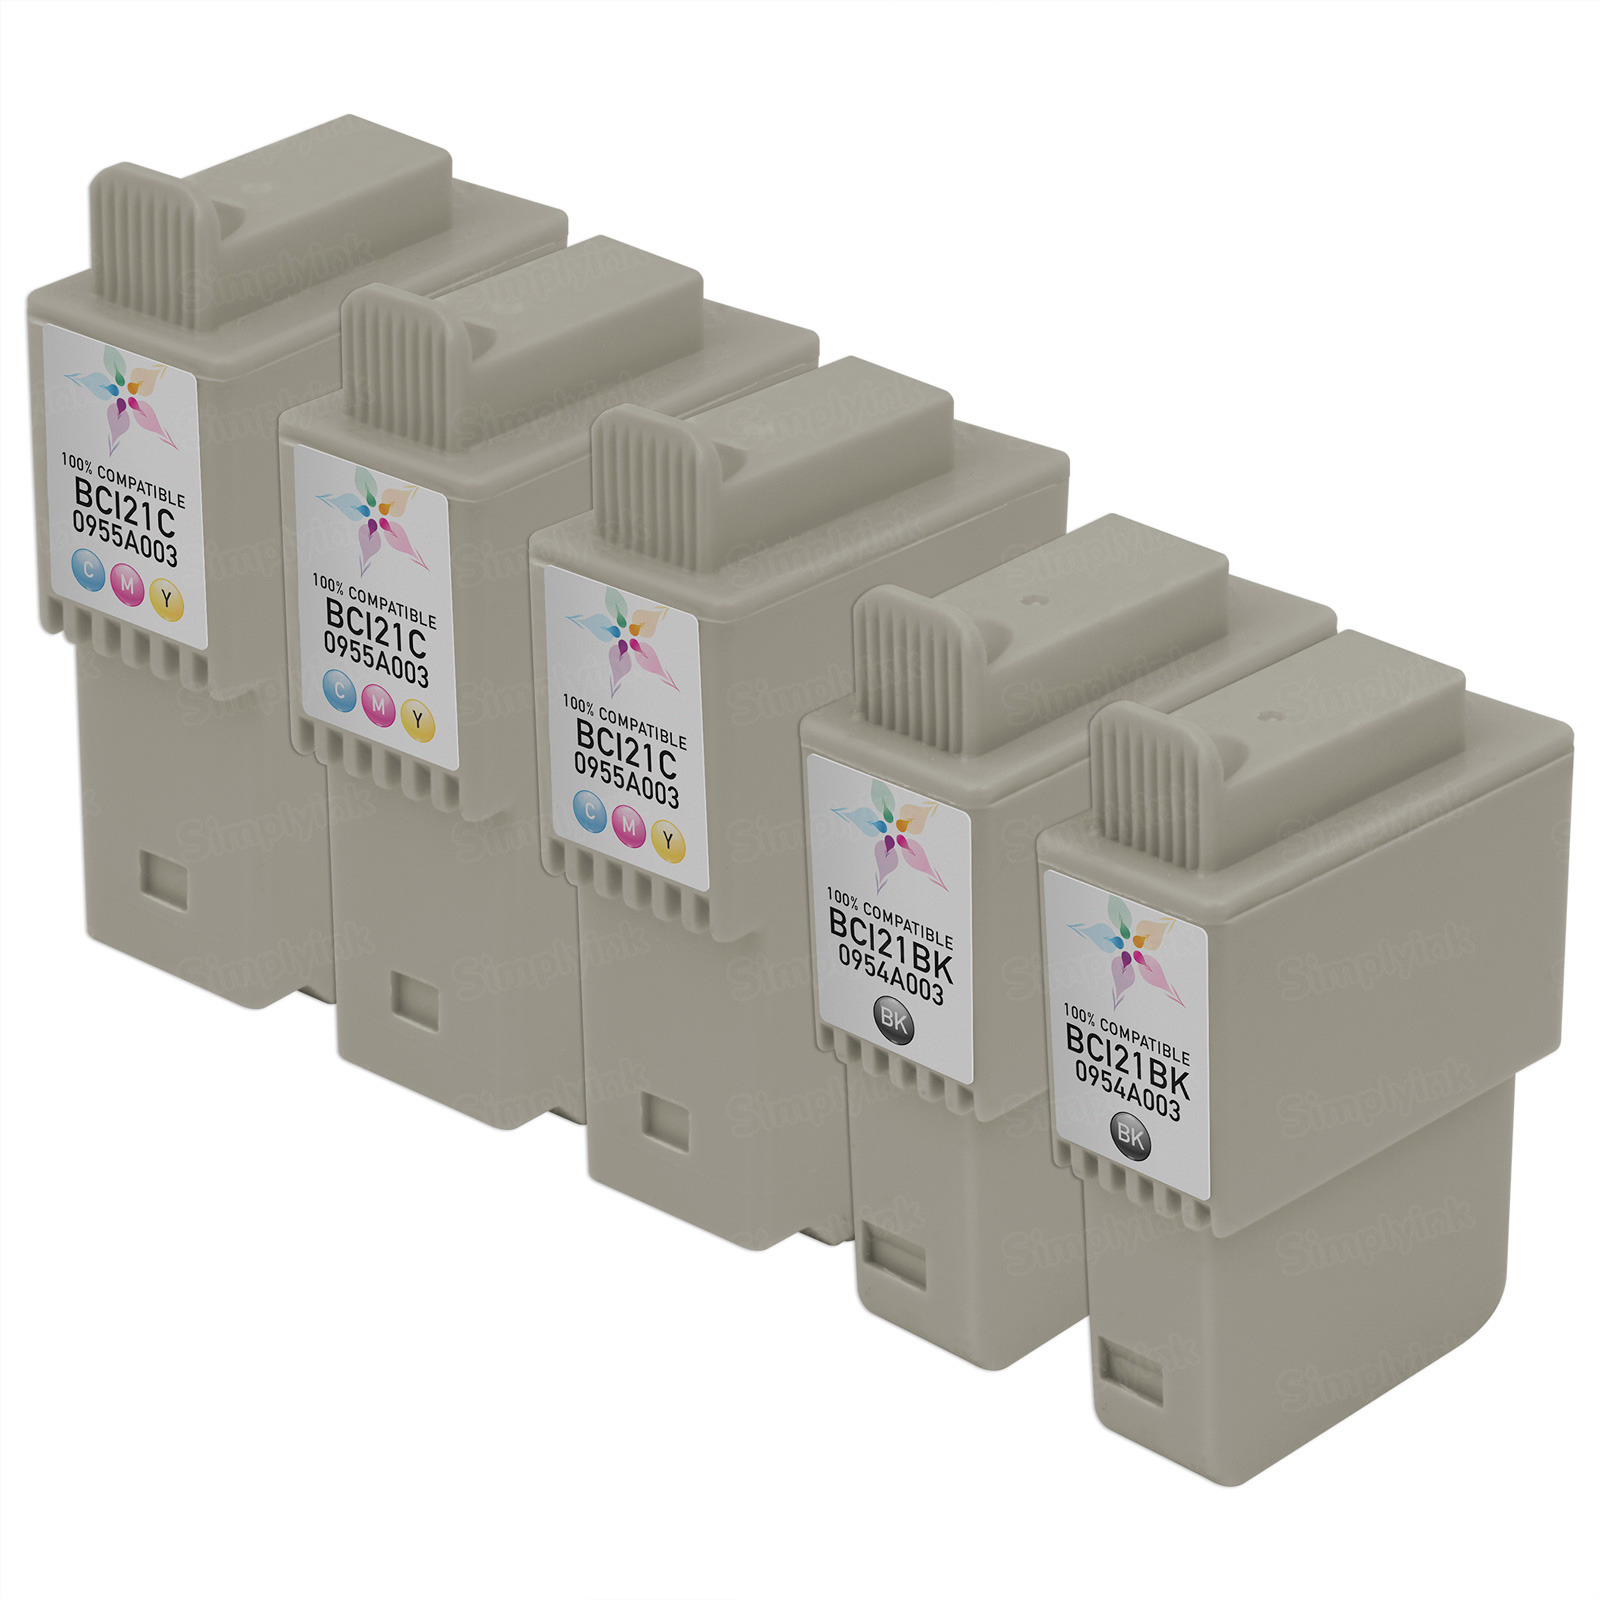 Inkjet Supplies for Canon Printers - Remanufactured Bulk Set of 5 Ink Cartridges - 3 Black Canon BCI21B and 2 Color Canon BCI21C